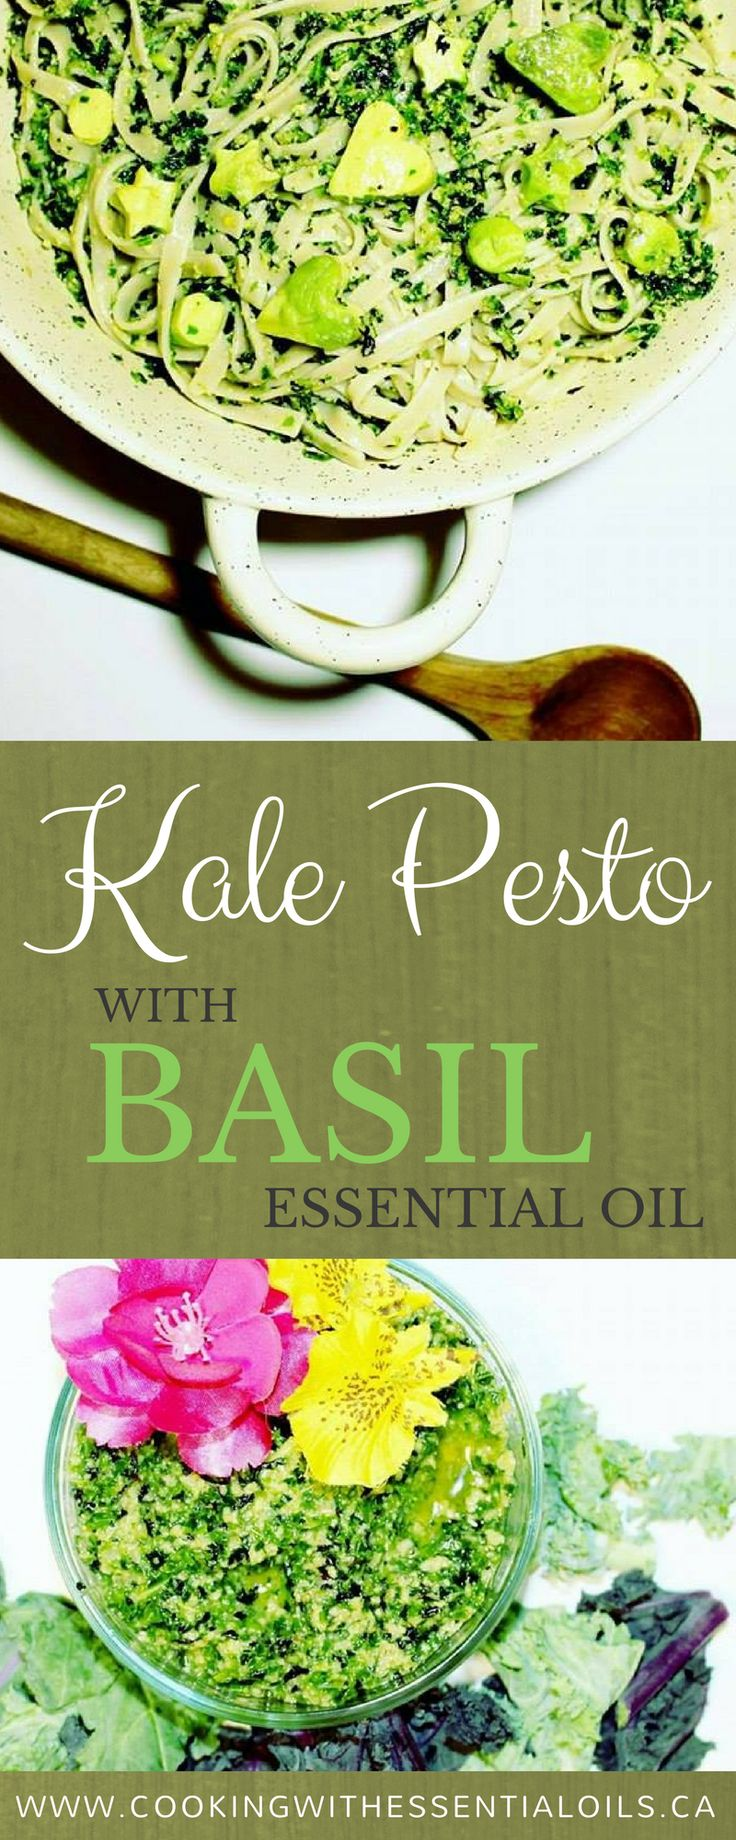 Guest recipe created by Sara  @mshealthesteem from www.mshealthesteem.com who shares a unique and healthy take on a classic pesto dish using kale and basil essential oil. #essentialoils #basil #kale